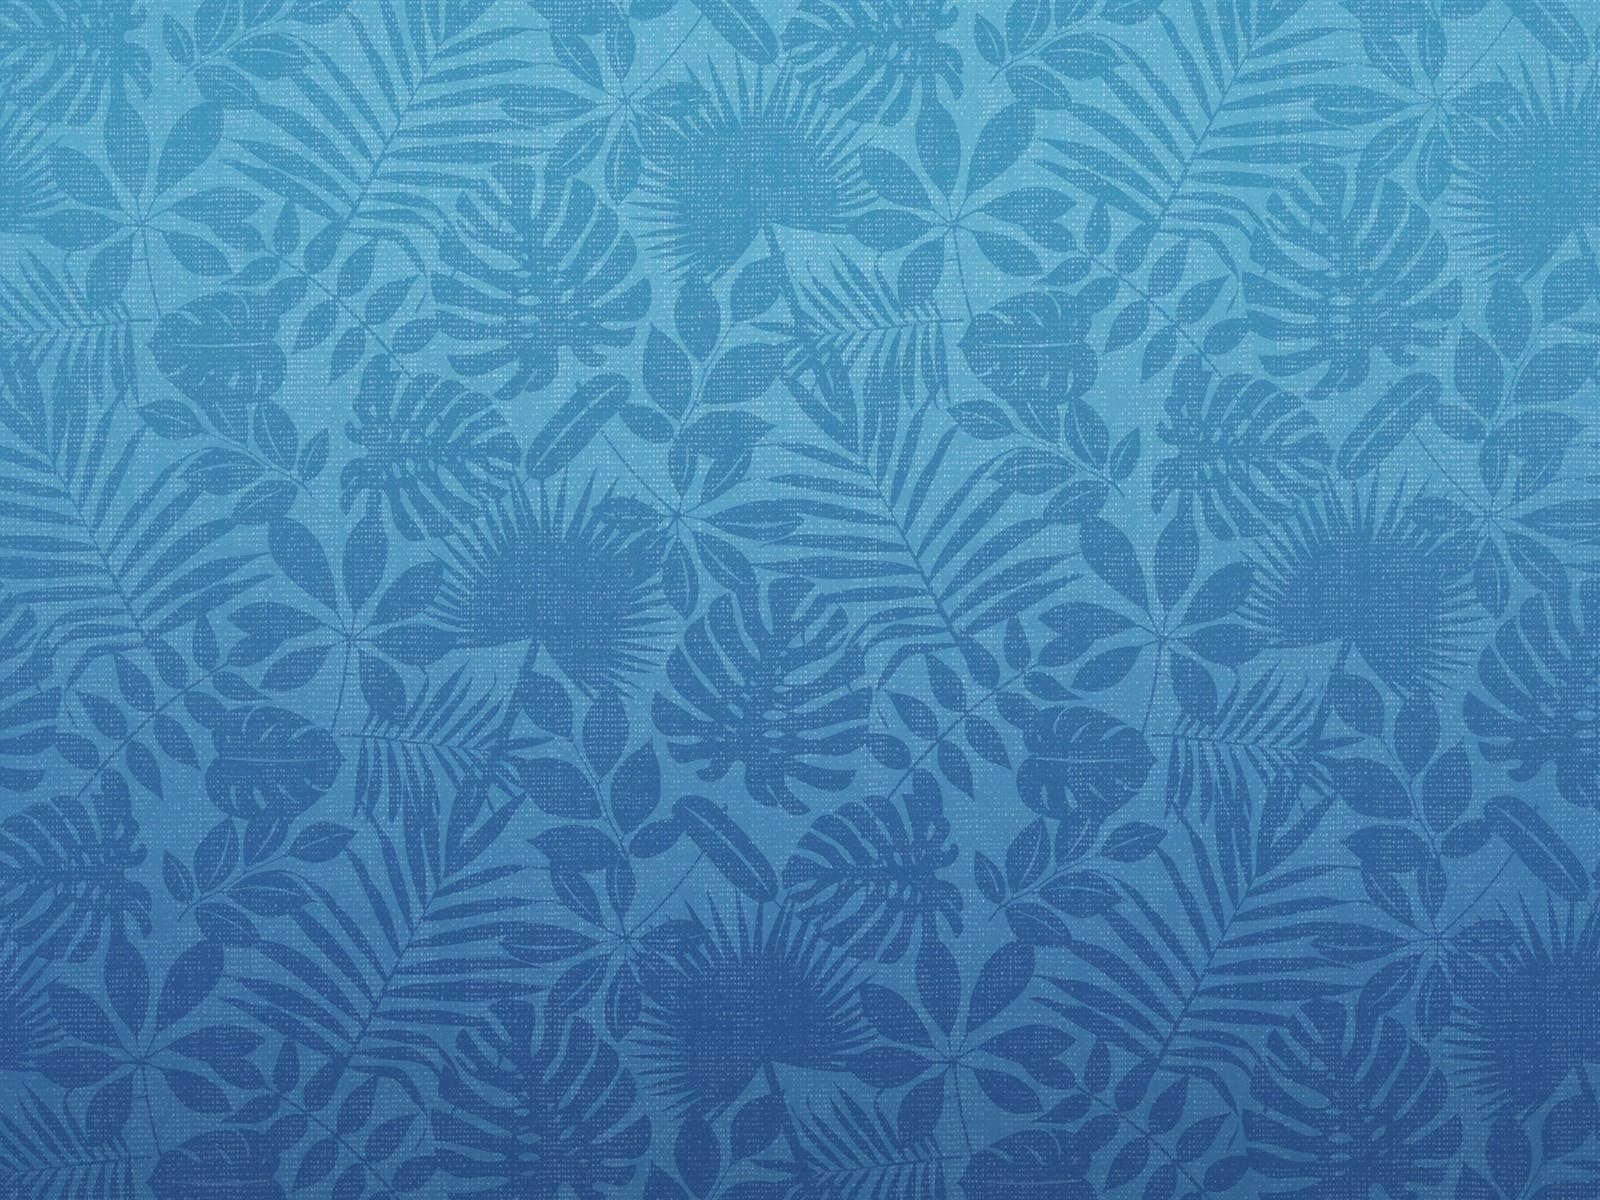 Blue Hawaiian printing-Mac OS Wallpaper - 1600x1200 wallpaper ...